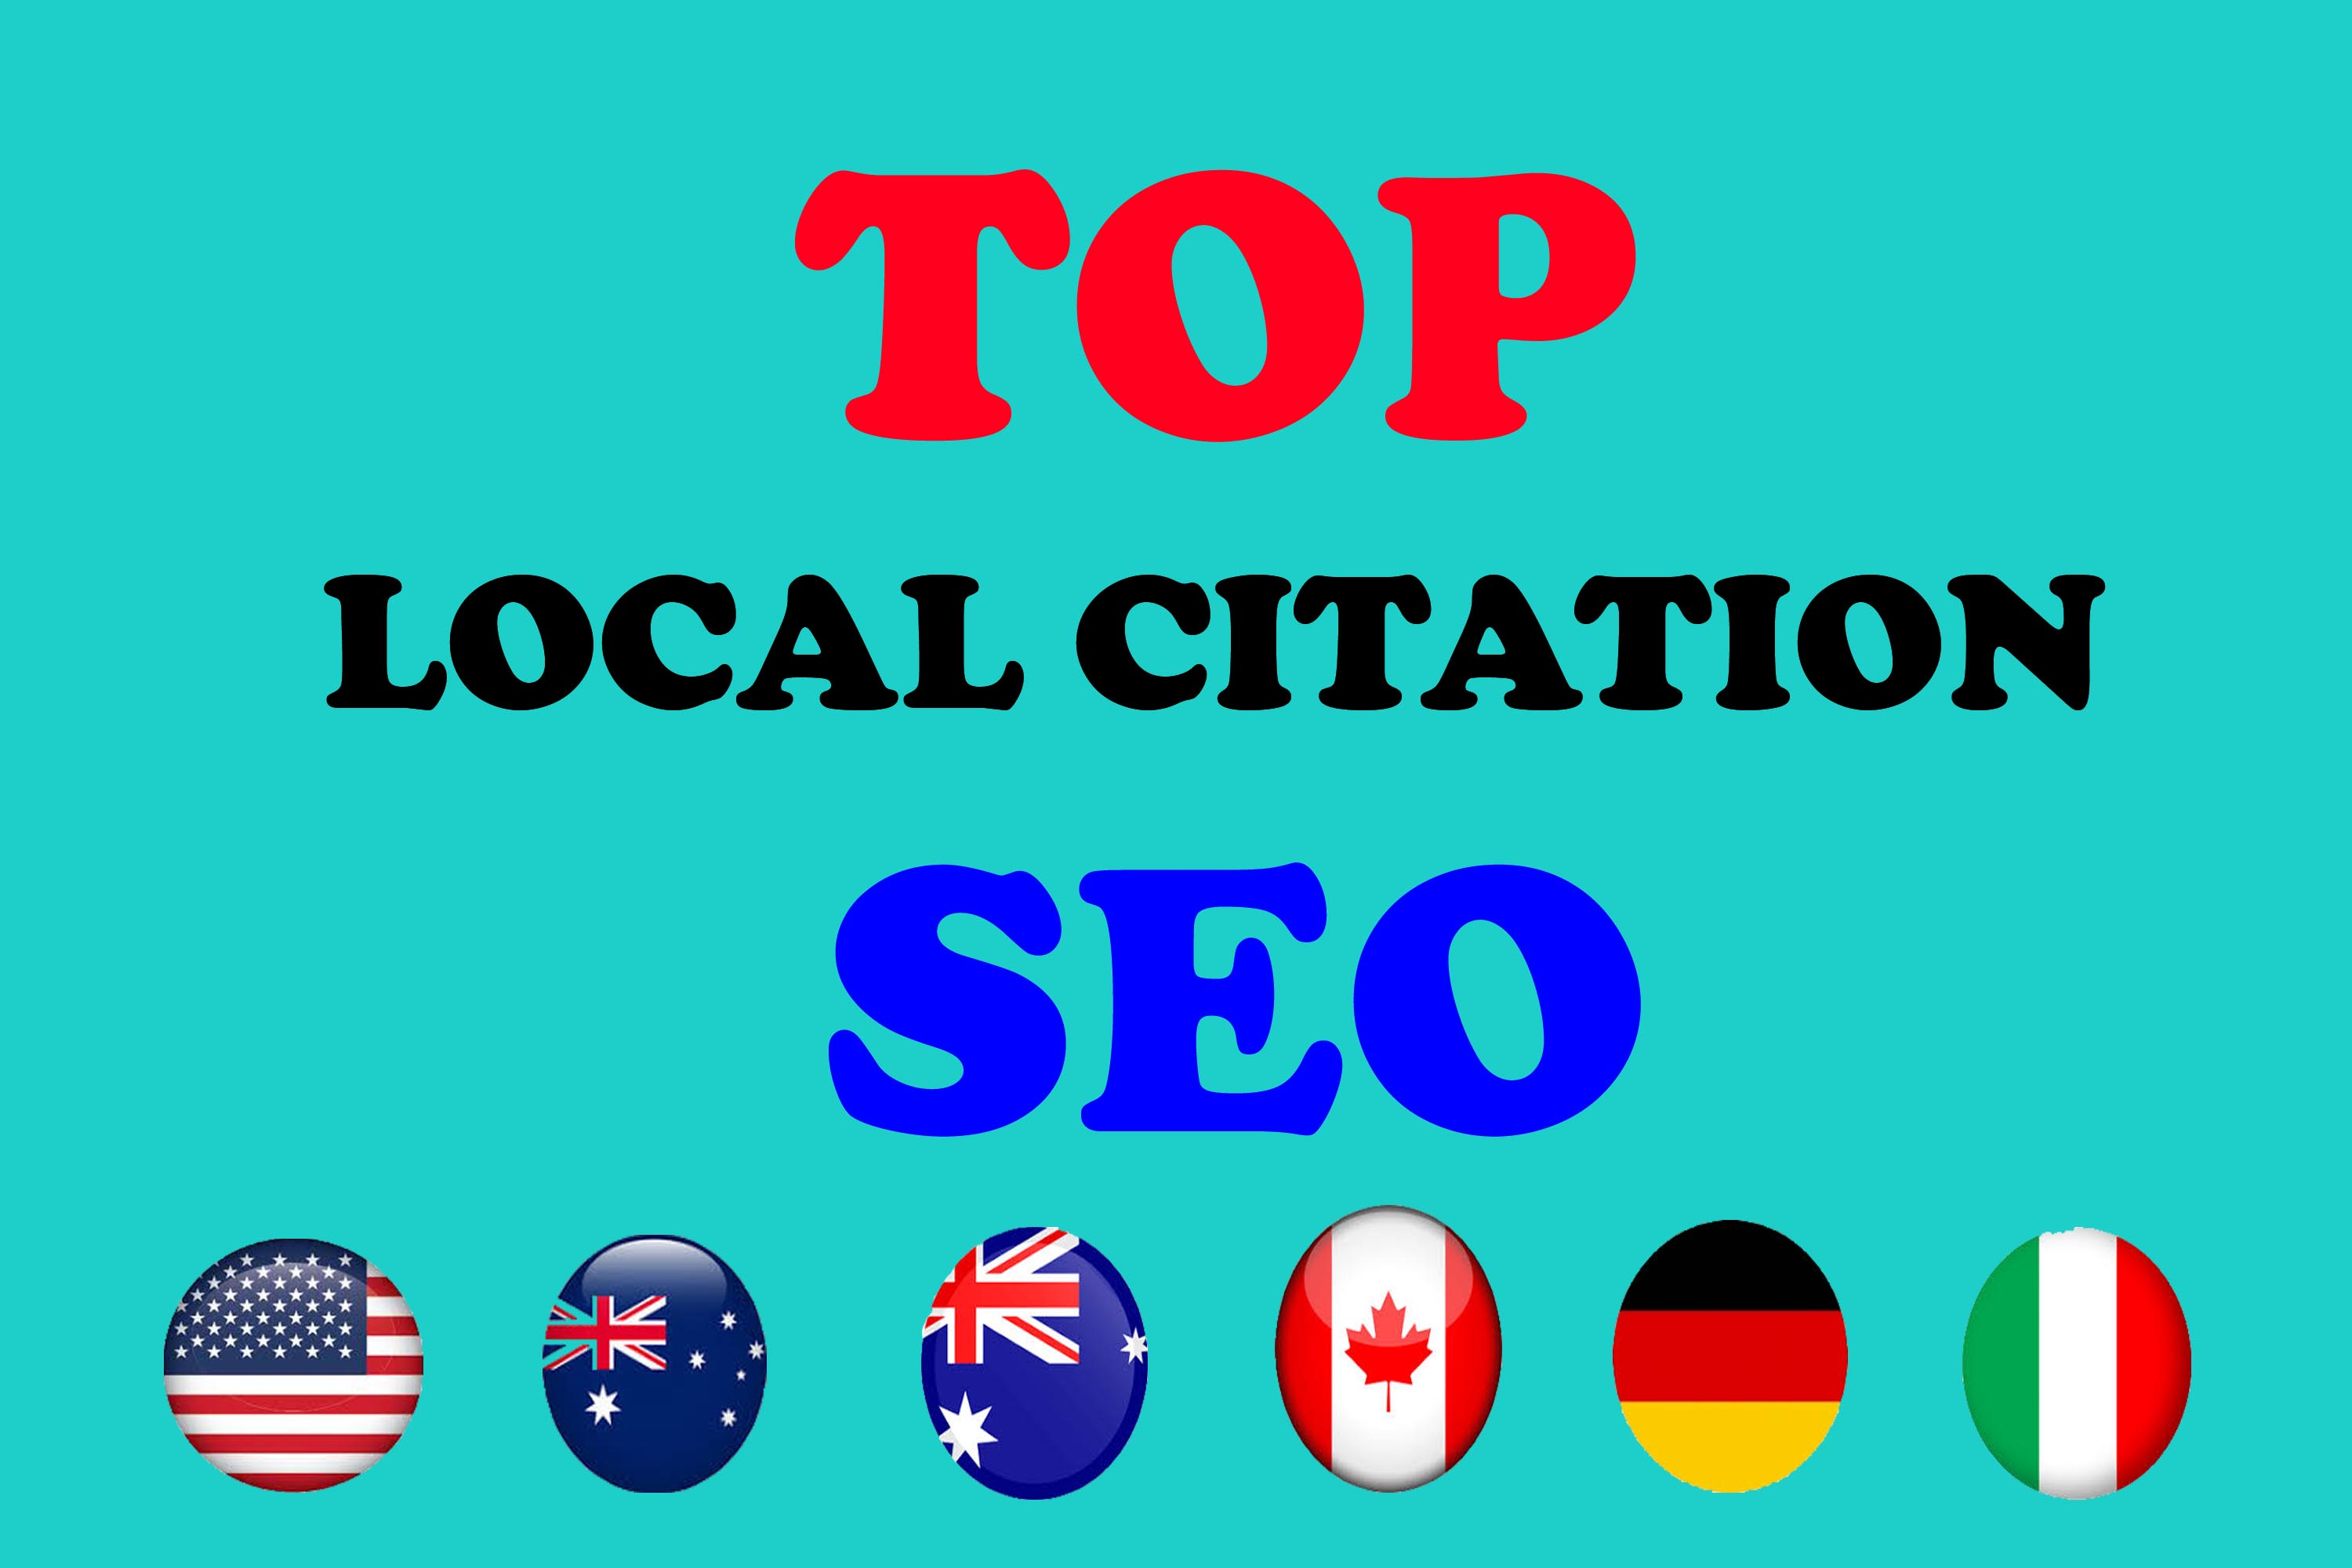 Manually create high quality Top 30 local citation or local SEO listing for your website